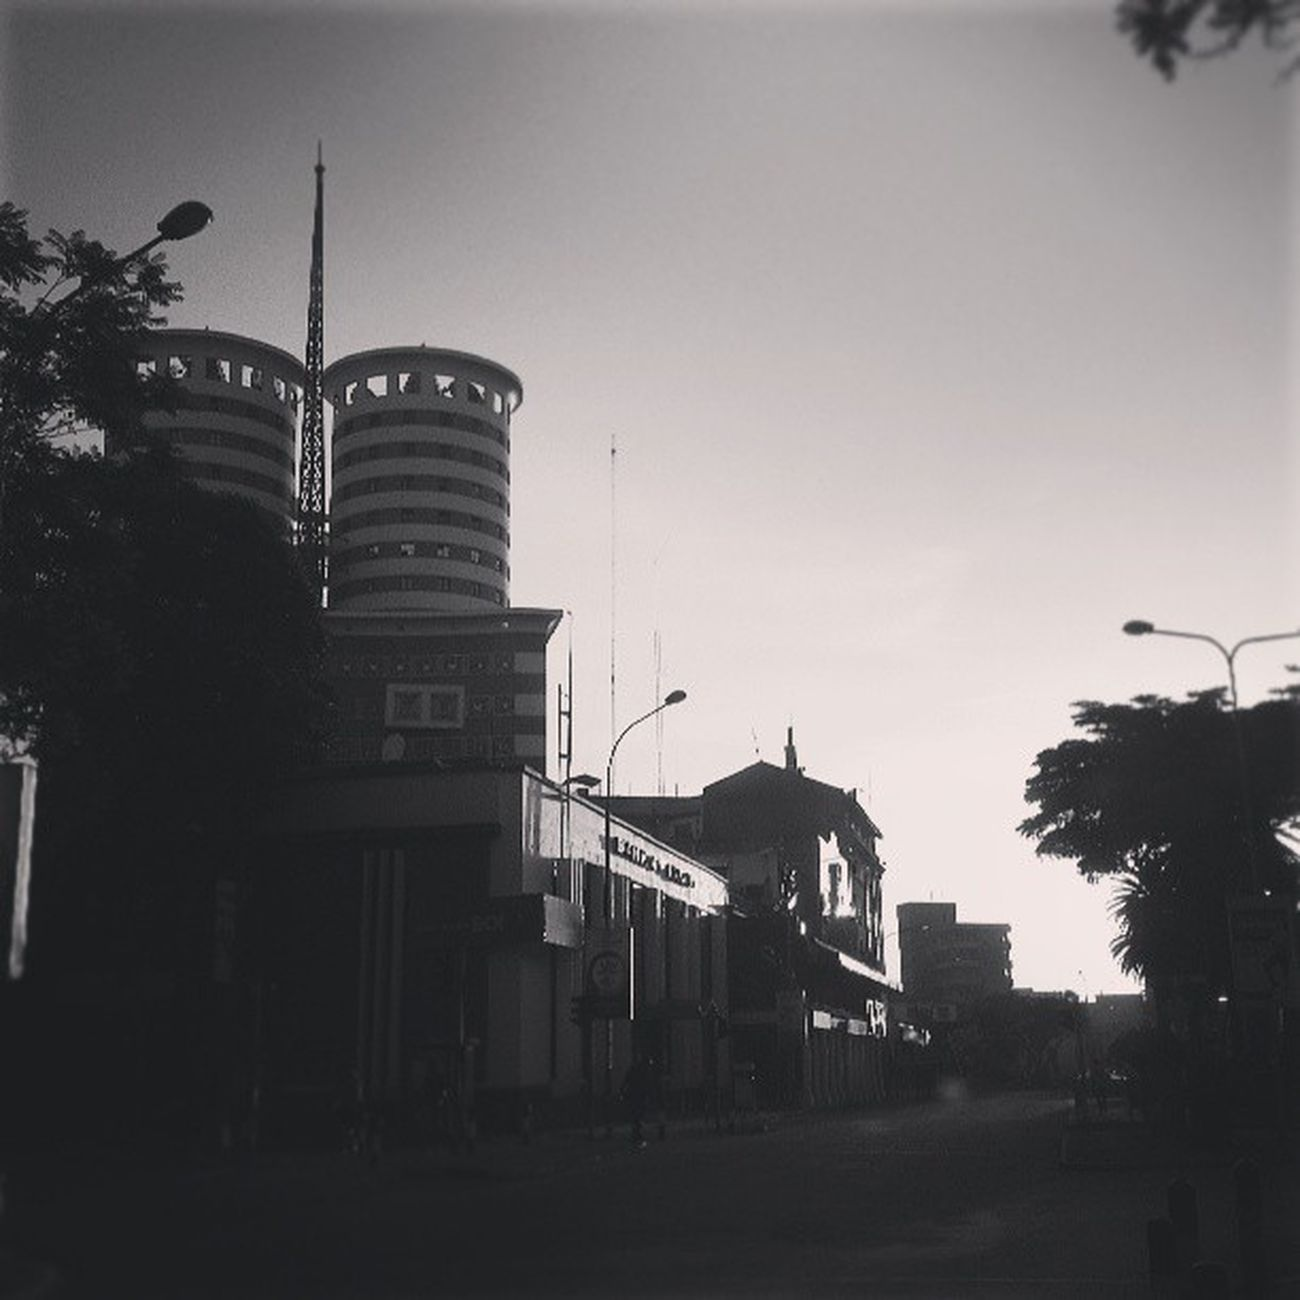 NationMediaHouse Goodmorning Nairobi Webstagram statigram photography blackandwhite B&W sunrise morningdrive